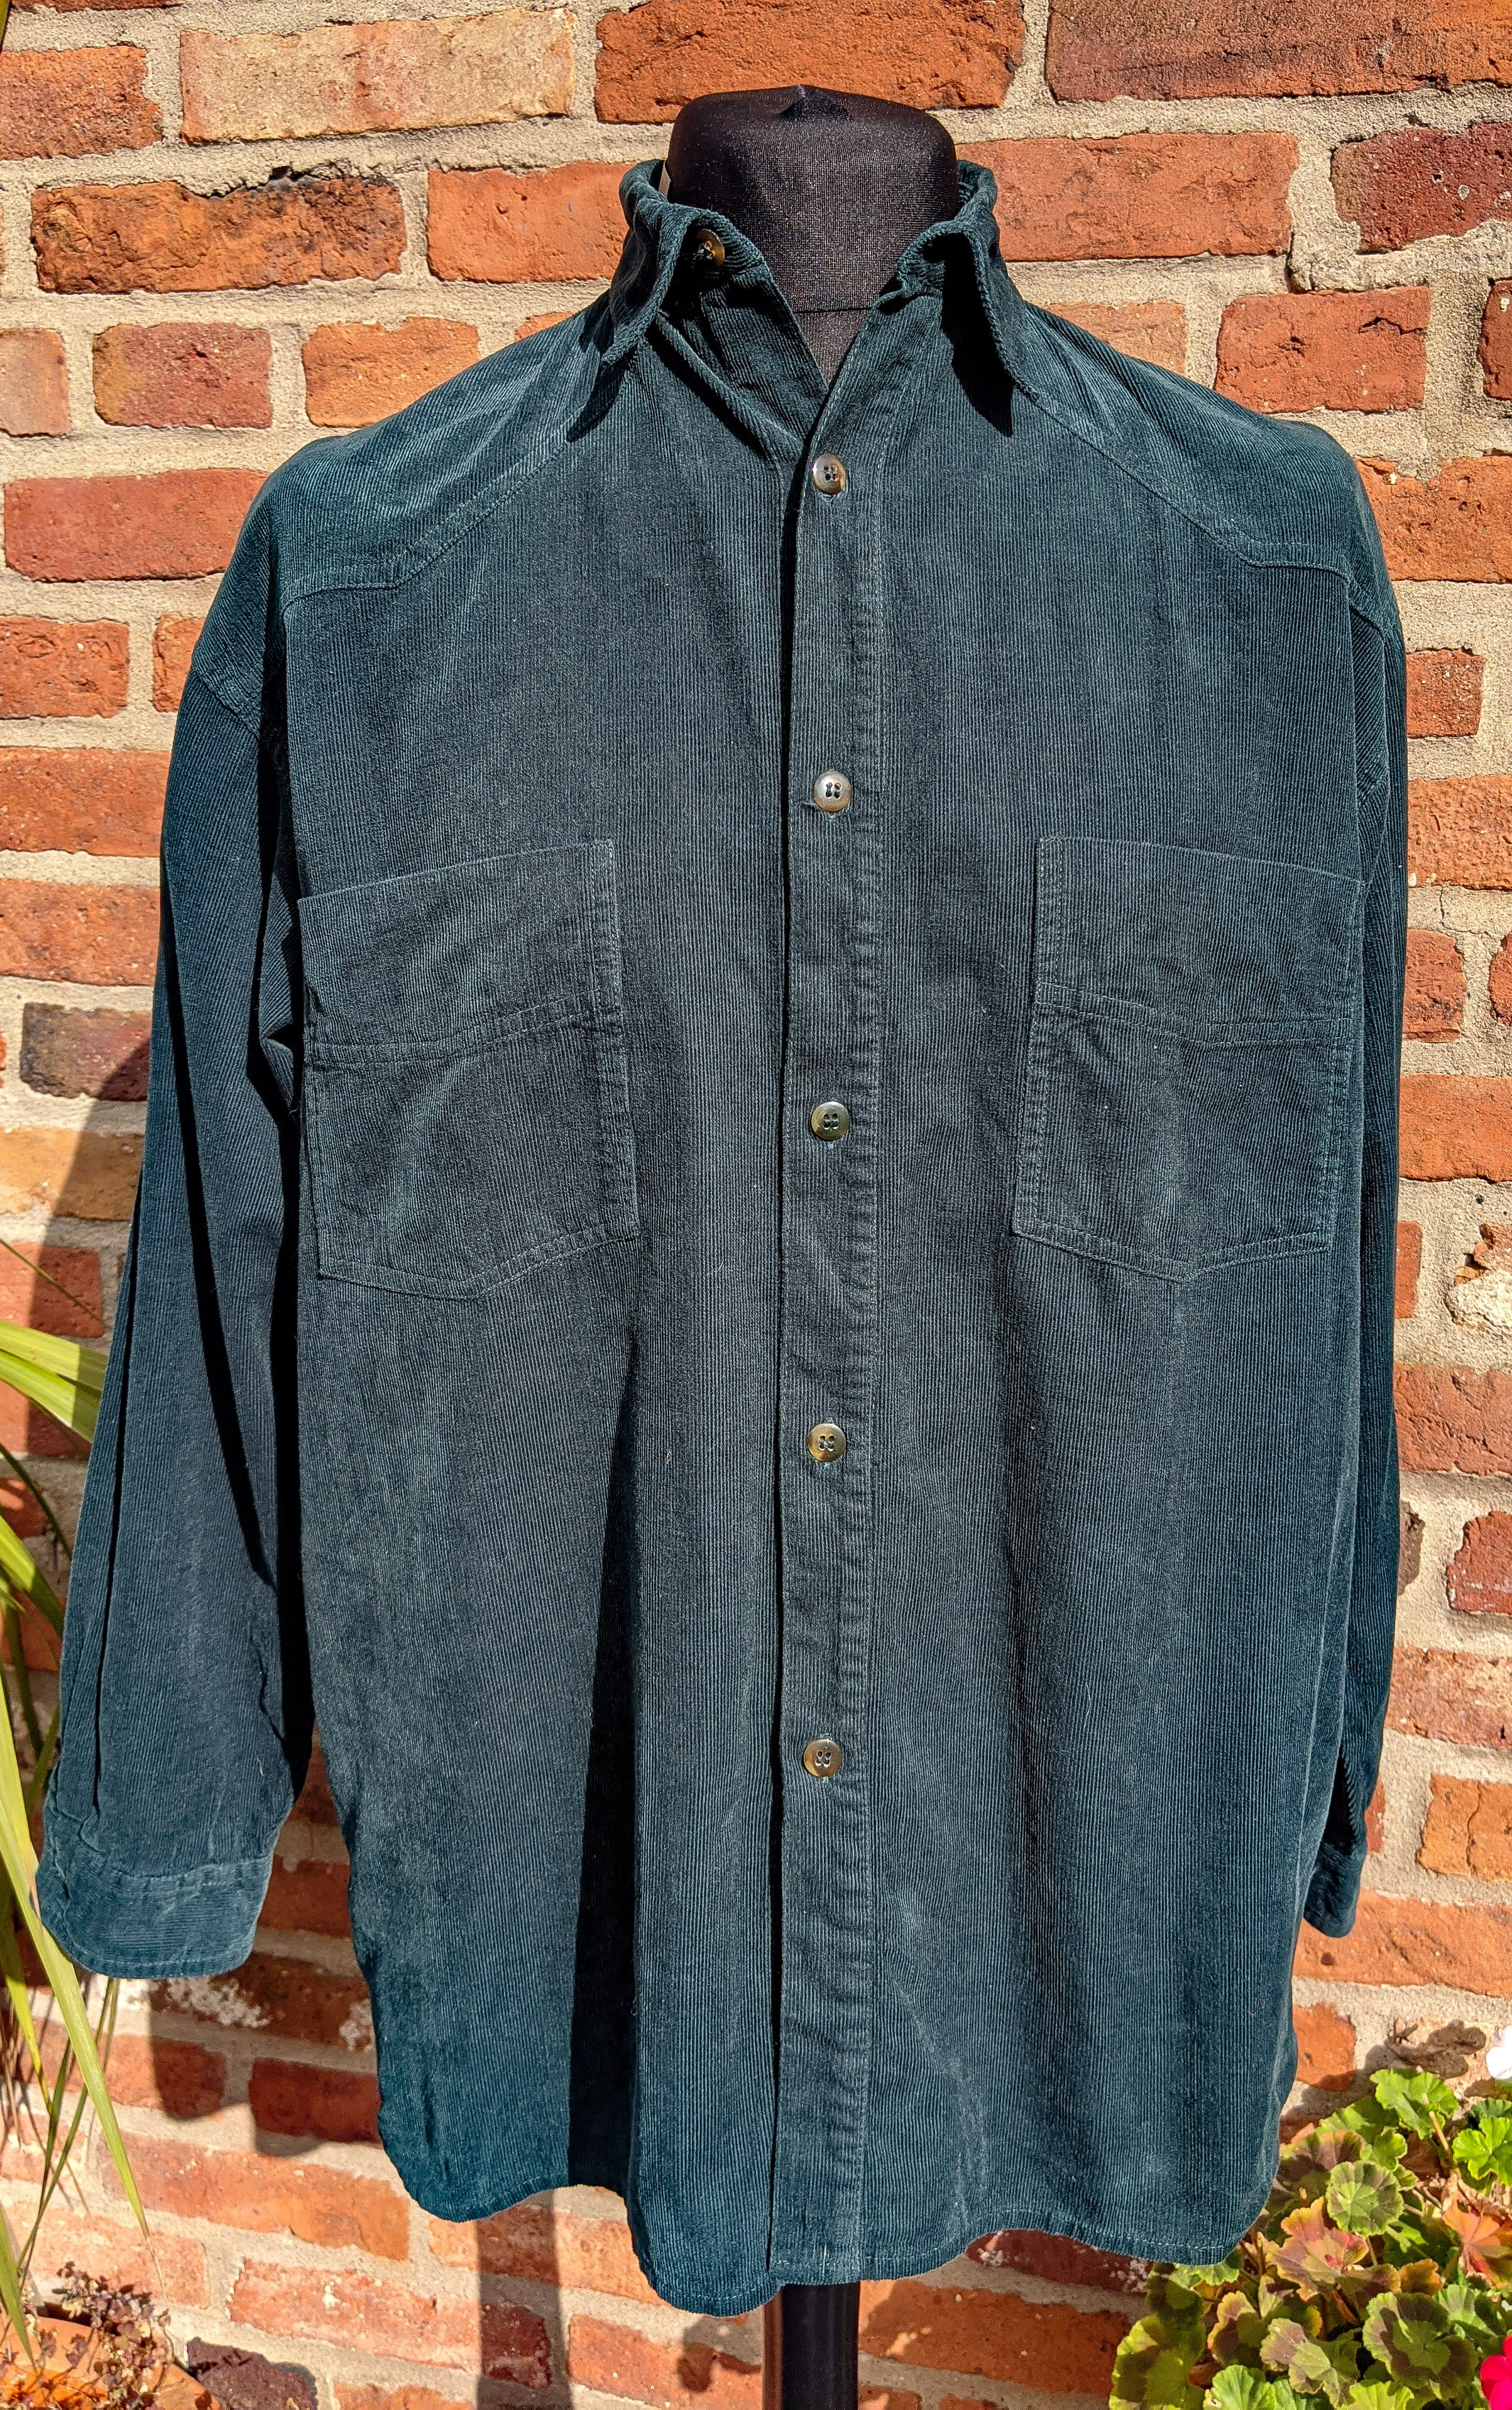 90s bottle green cord shirt size L